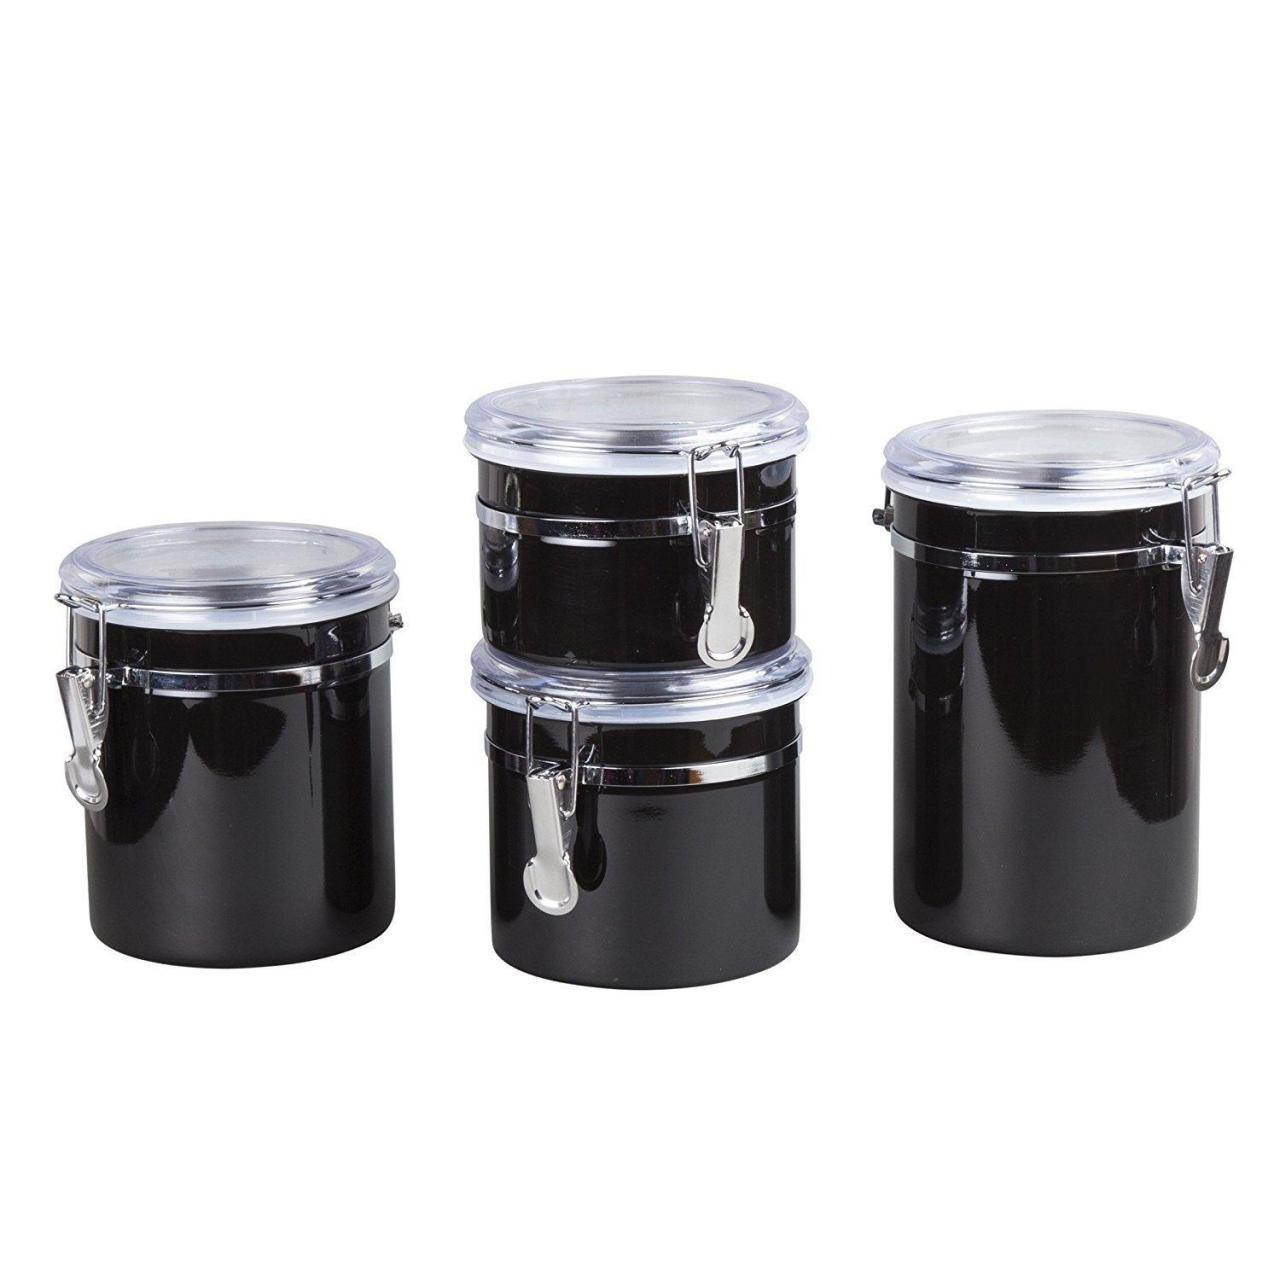 Buy cheap Dailyart Round Stainless Steel Canister Set with Locking Clamp CCJ0010 from wholesalers